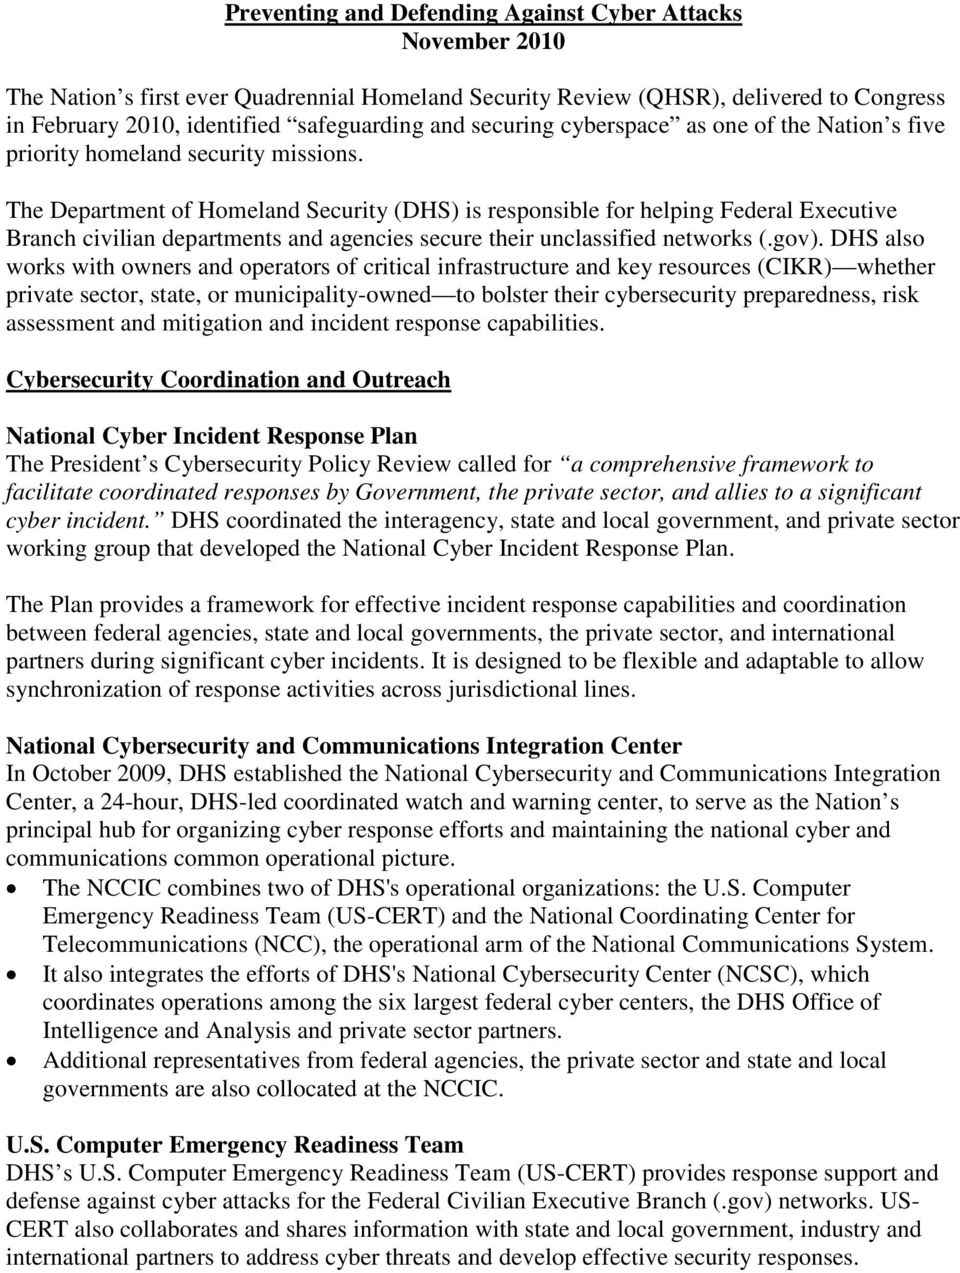 The Department of Homeland Security (DHS) is responsible for helping Federal Executive Branch civilian departments and agencies secure their unclassified networks (.gov).